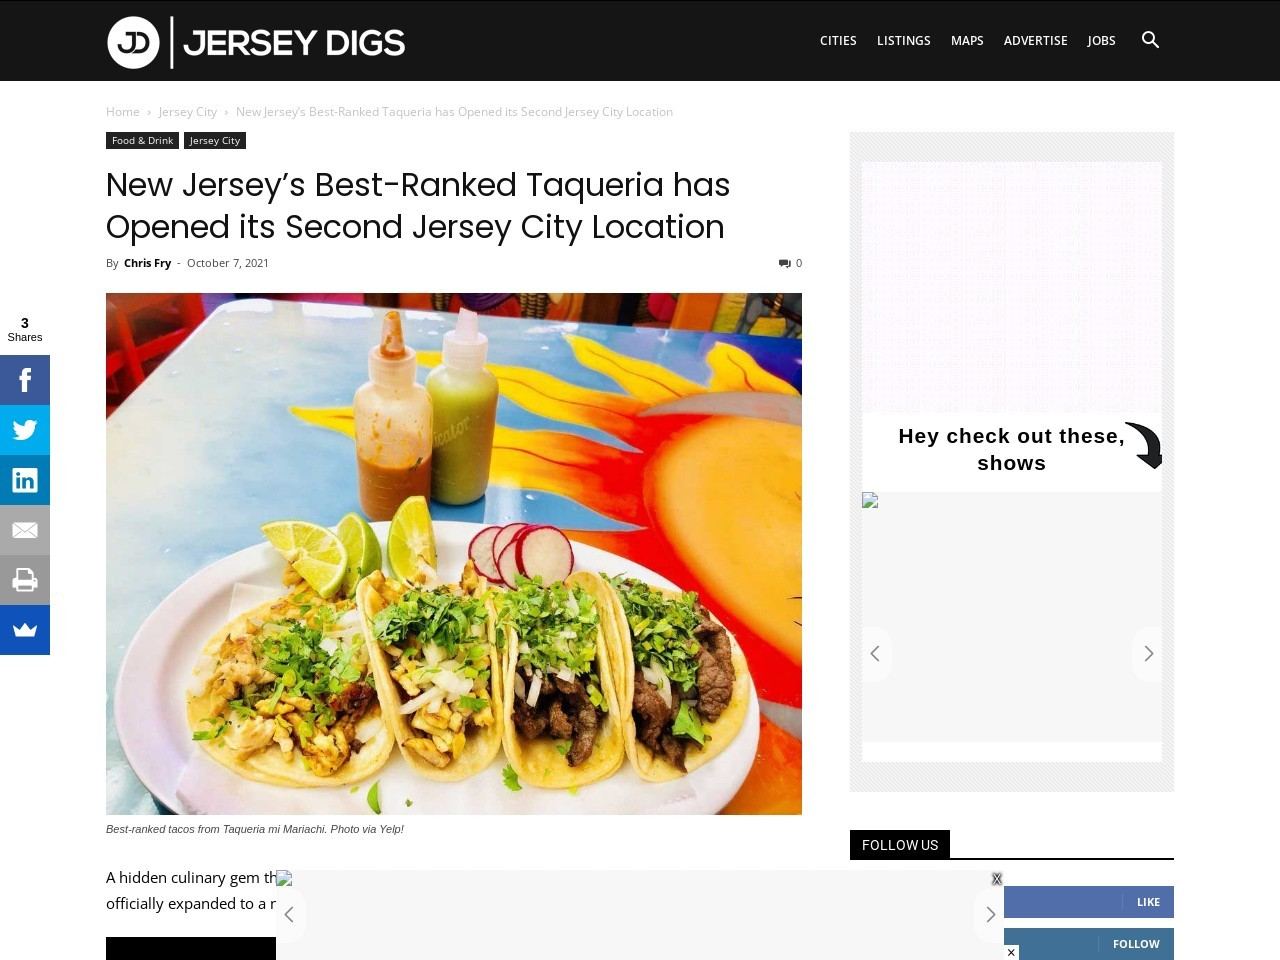 New Jersey's Best-Ranked Taqueria has Opened its Second Jersey City Location